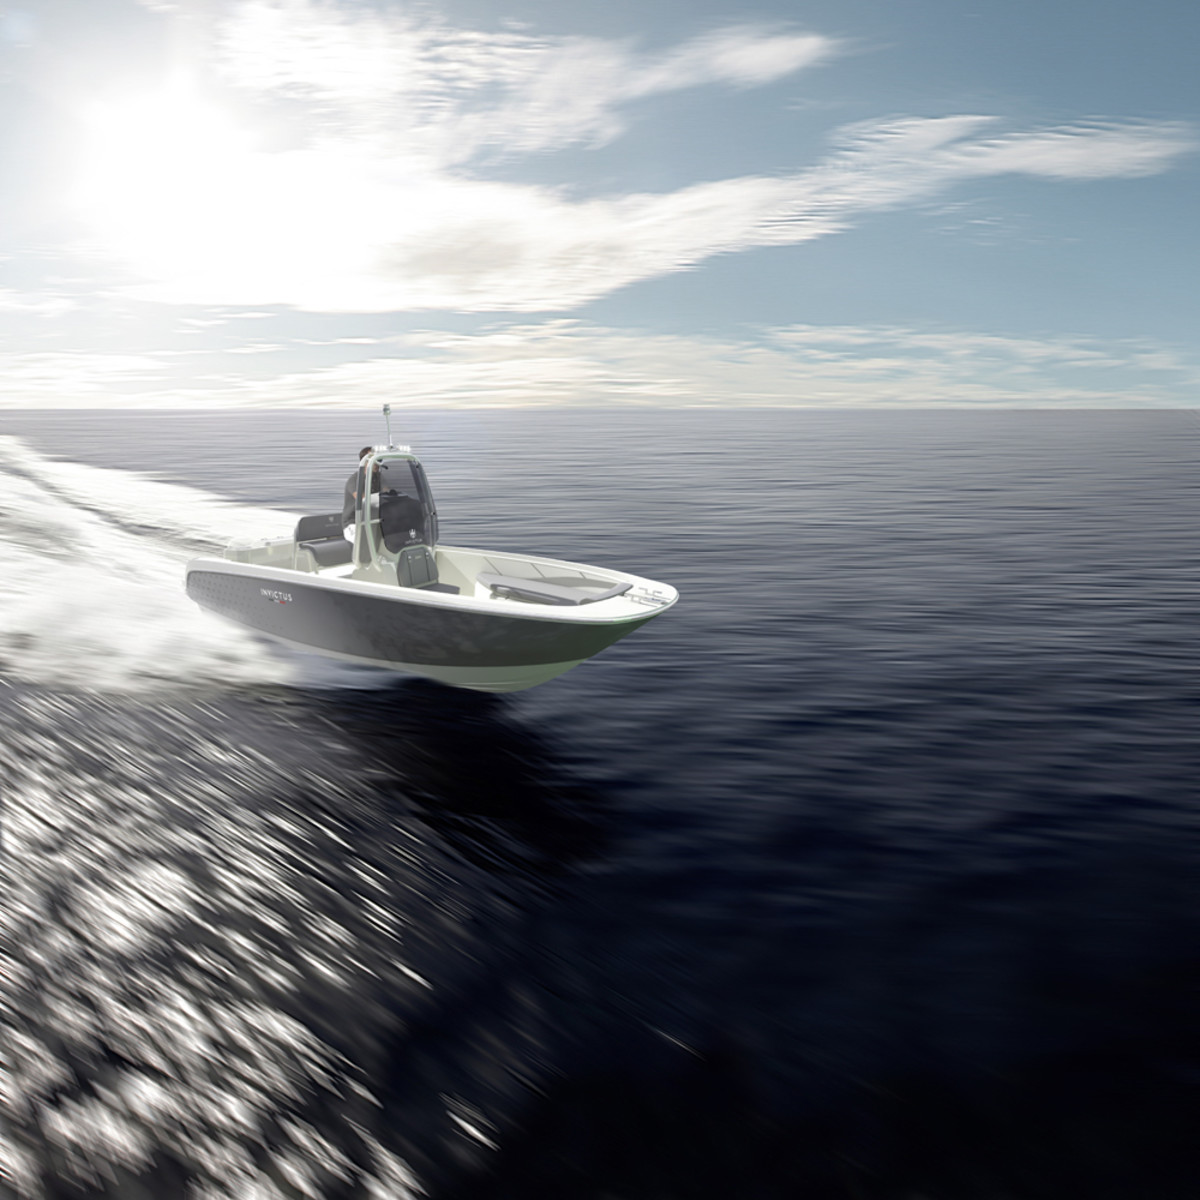 A rendering shows the new Invictus 200 HX. The hull has a beam of just under 8 feet and features a deep-vee design.